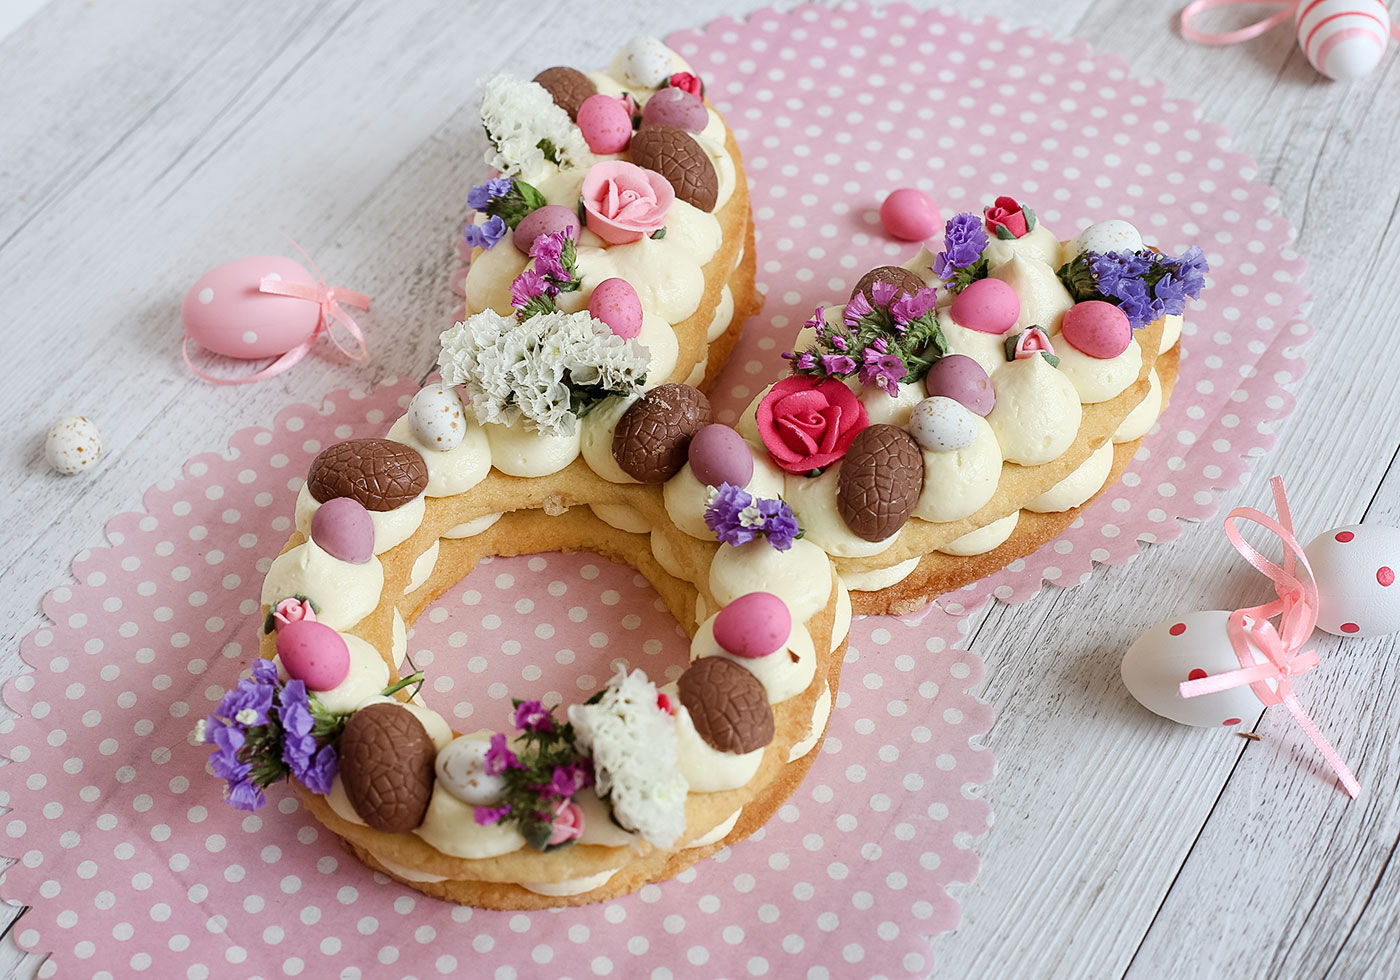 Close up of Easter Bunny Cream Tart surrounded by Easter eggs